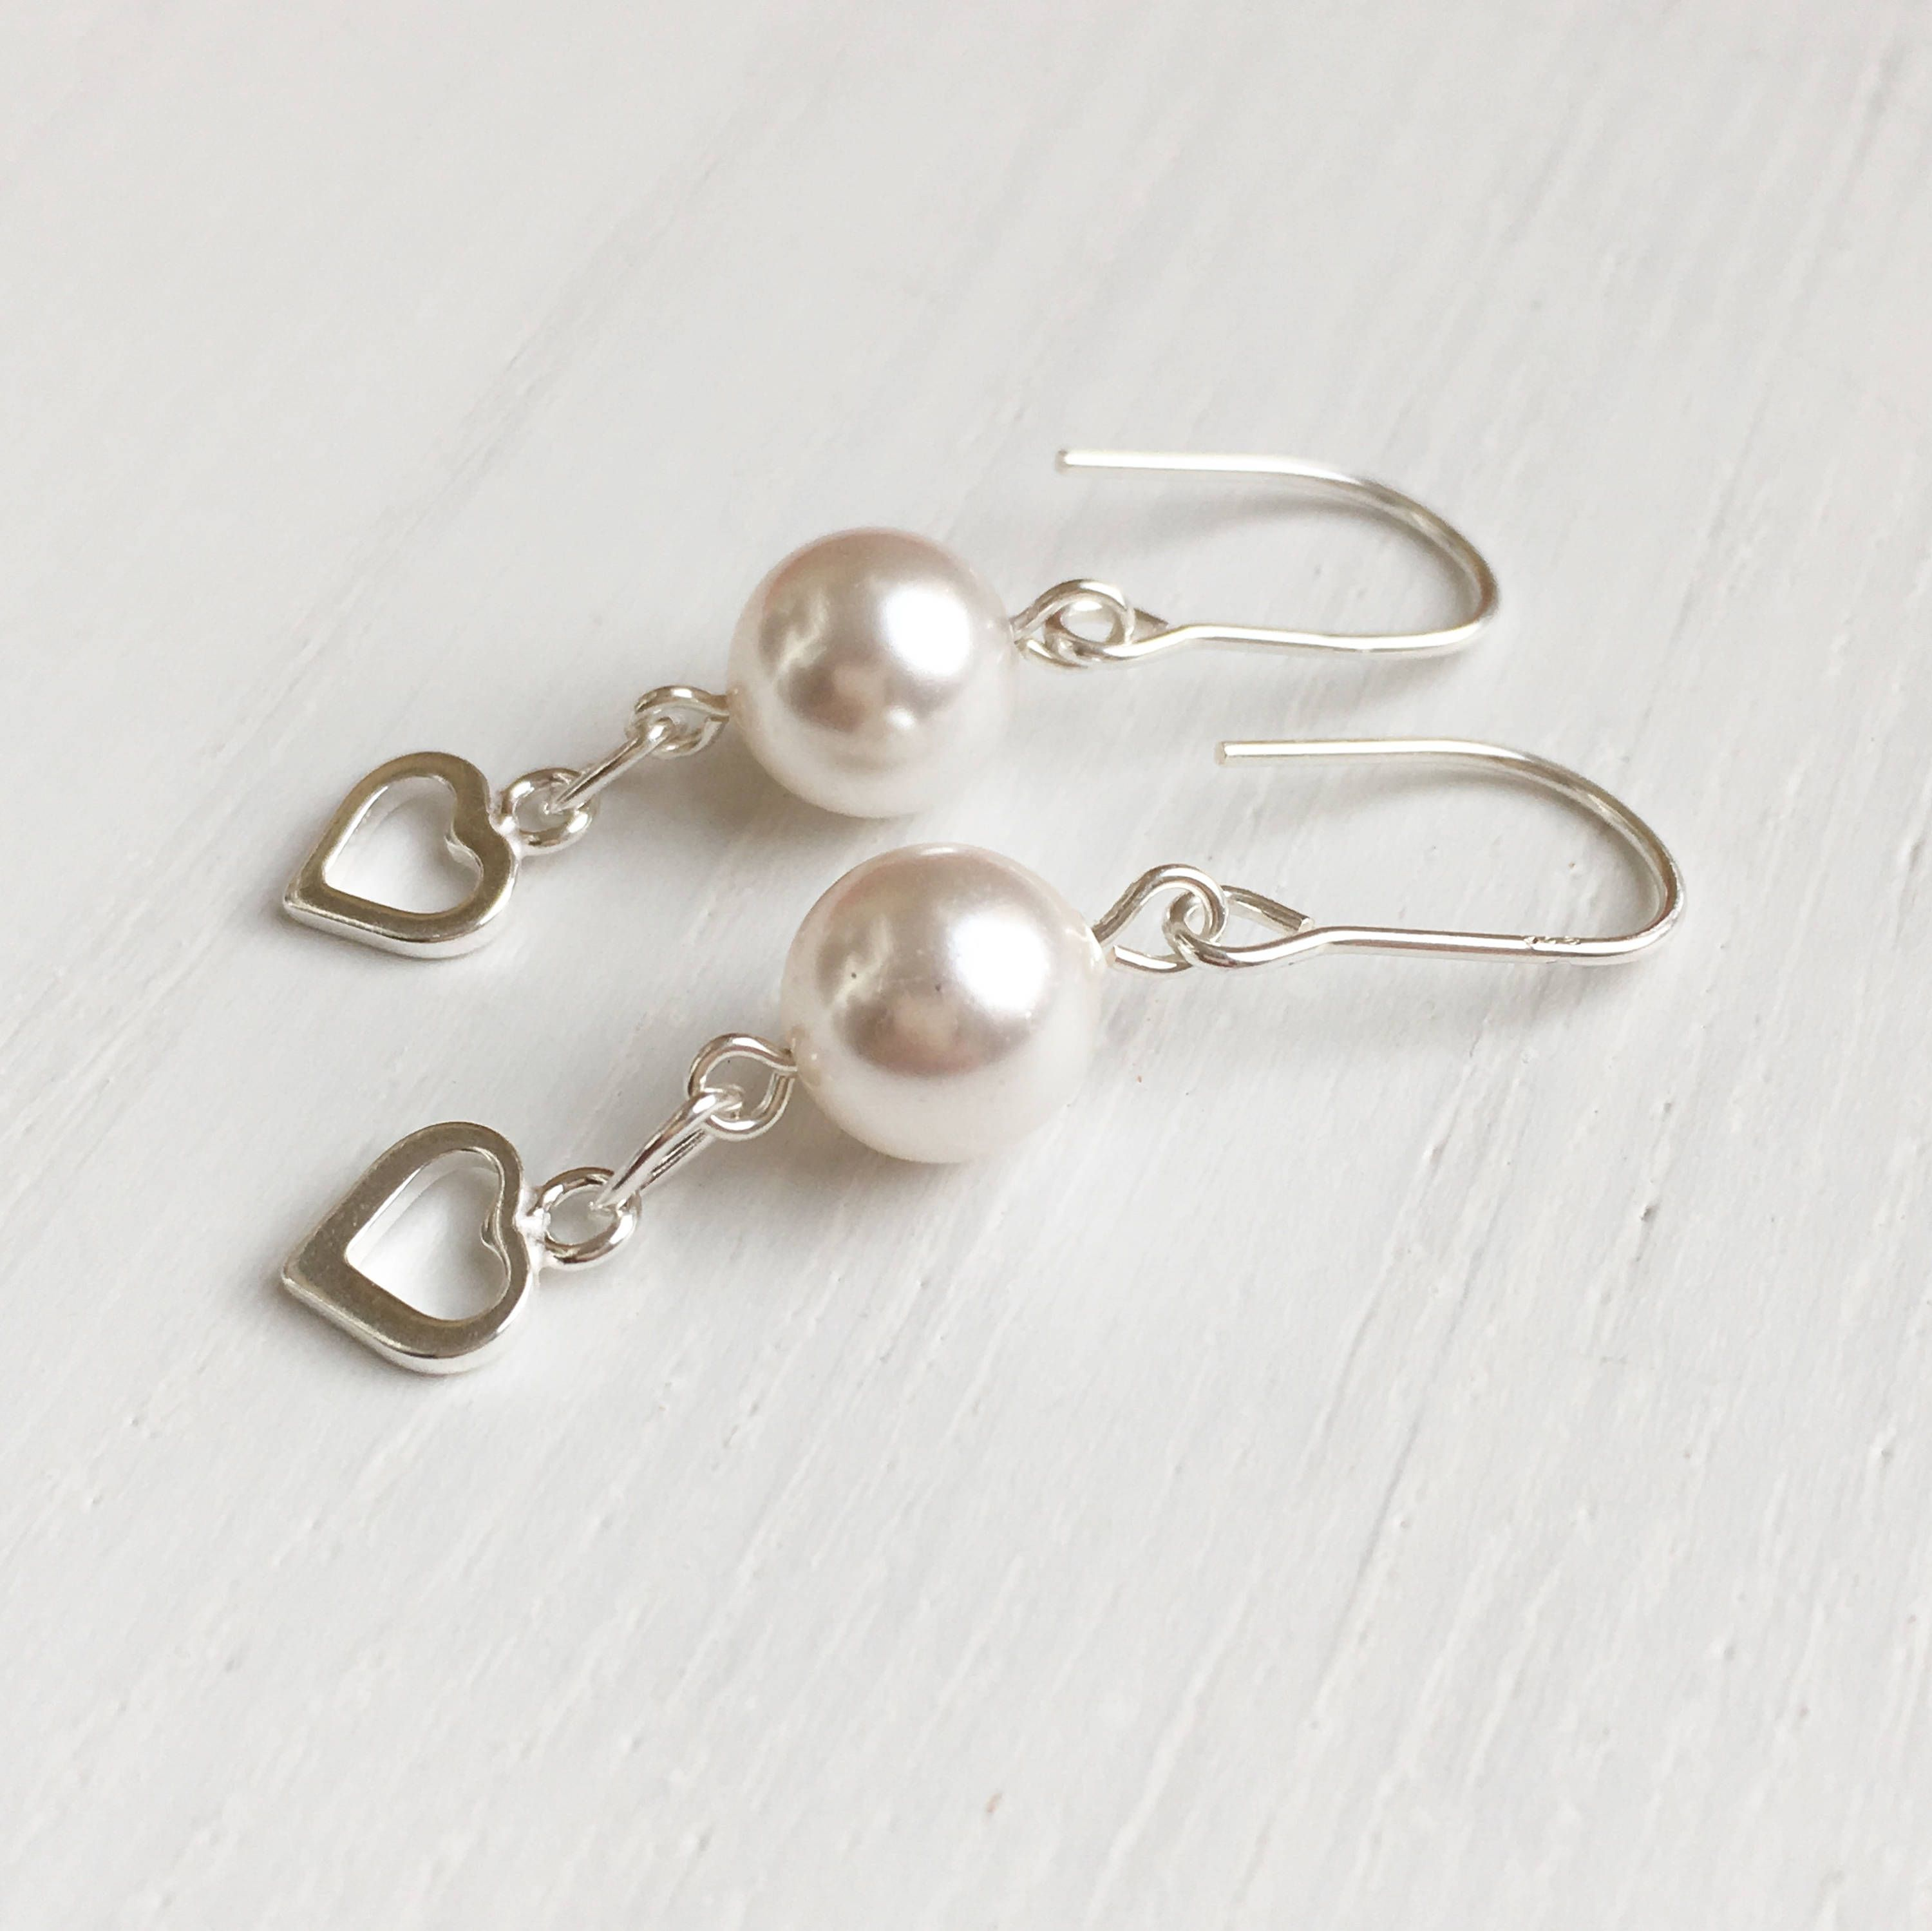 Love Hearts Silver Heart Earrings White Pearl Romantic Gifts For Her Wife Birthday Gift Anniversary UK Shops By